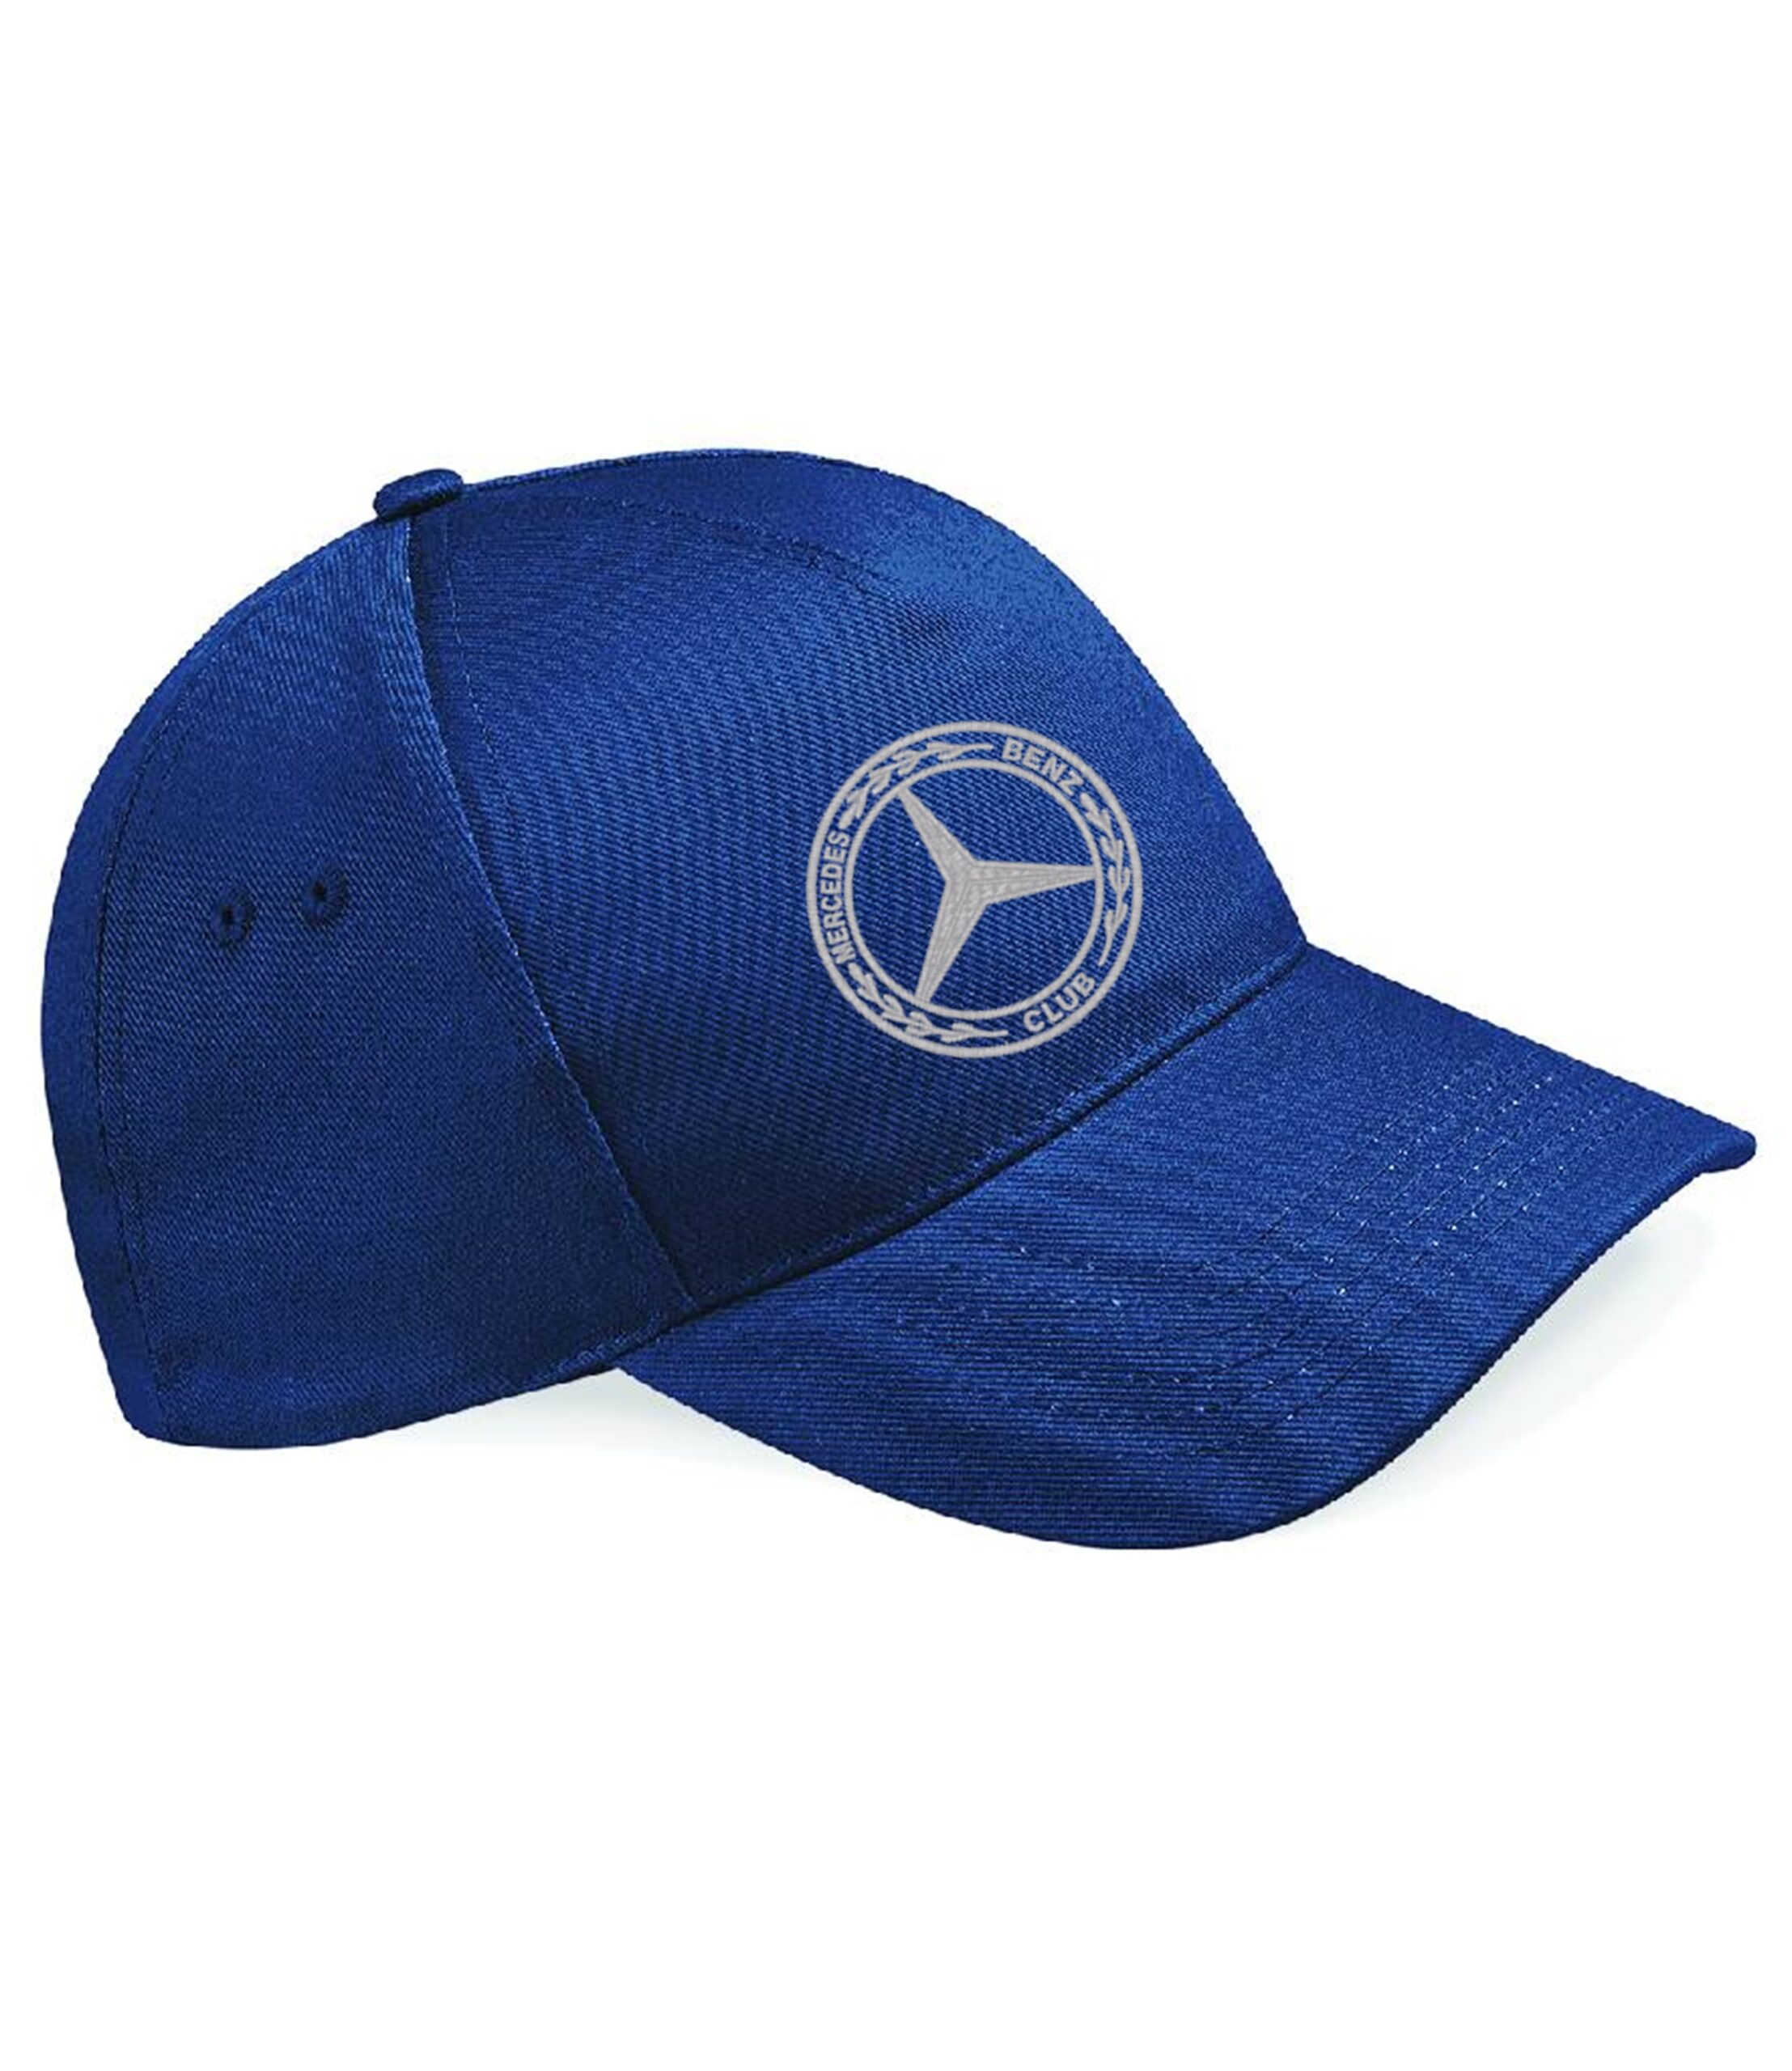 Mercedes-Benz Club Cap Navy